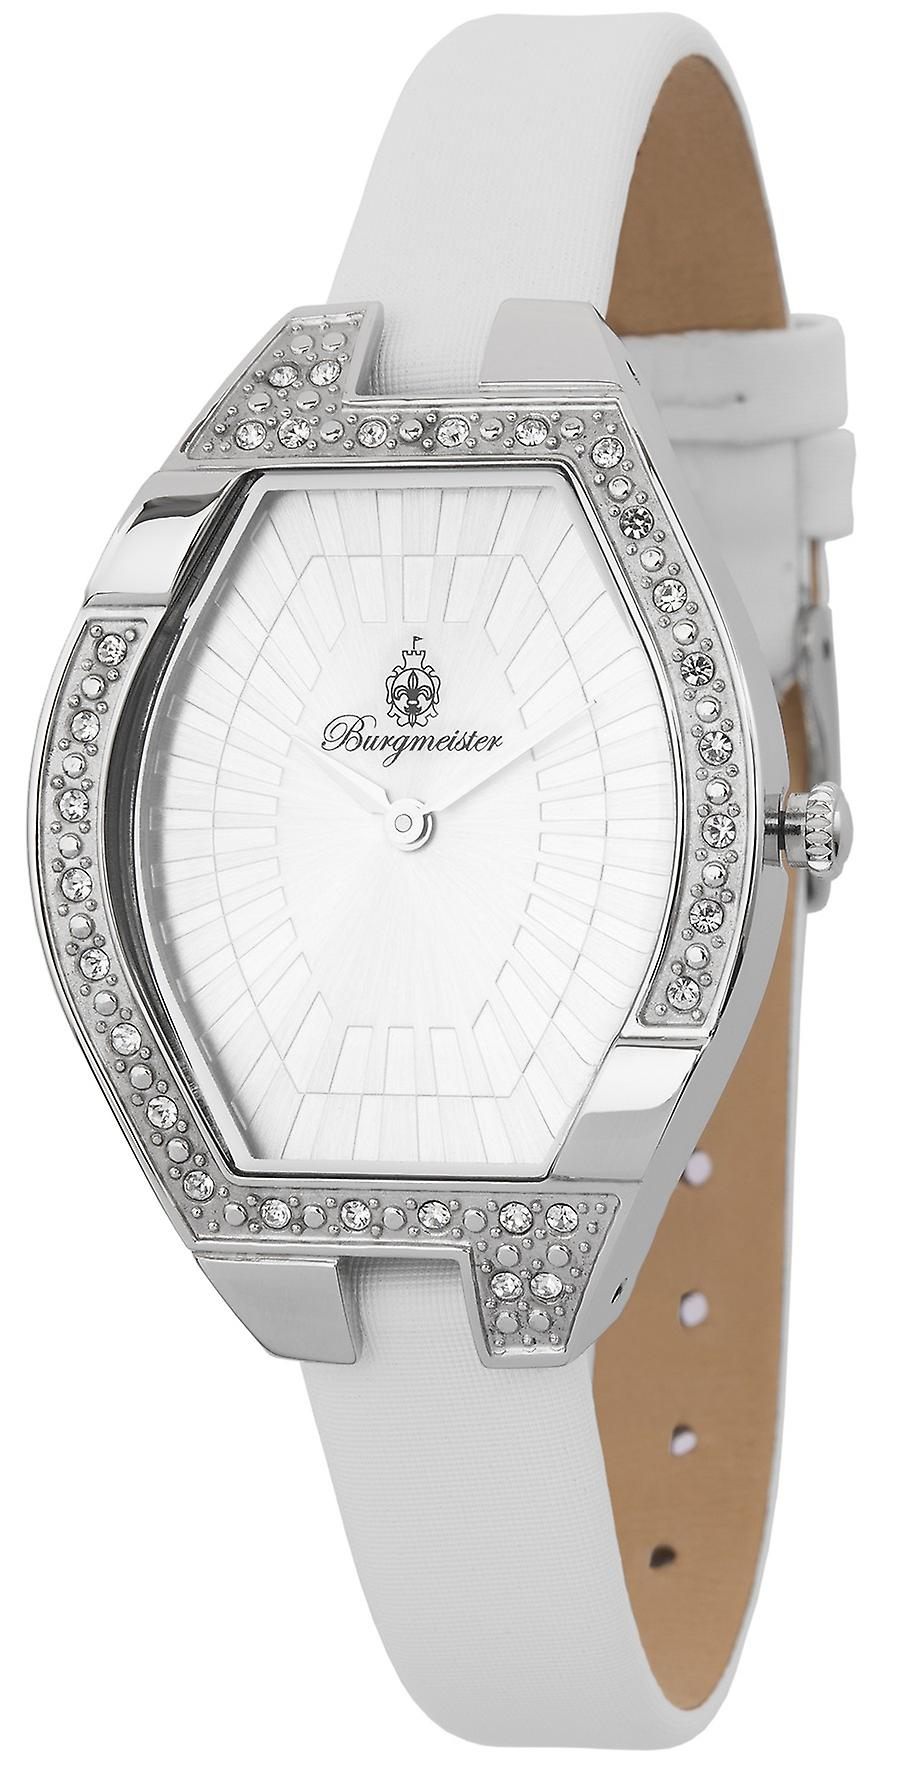 Burgmeister ladies quartz watch Arvada, BM801-186